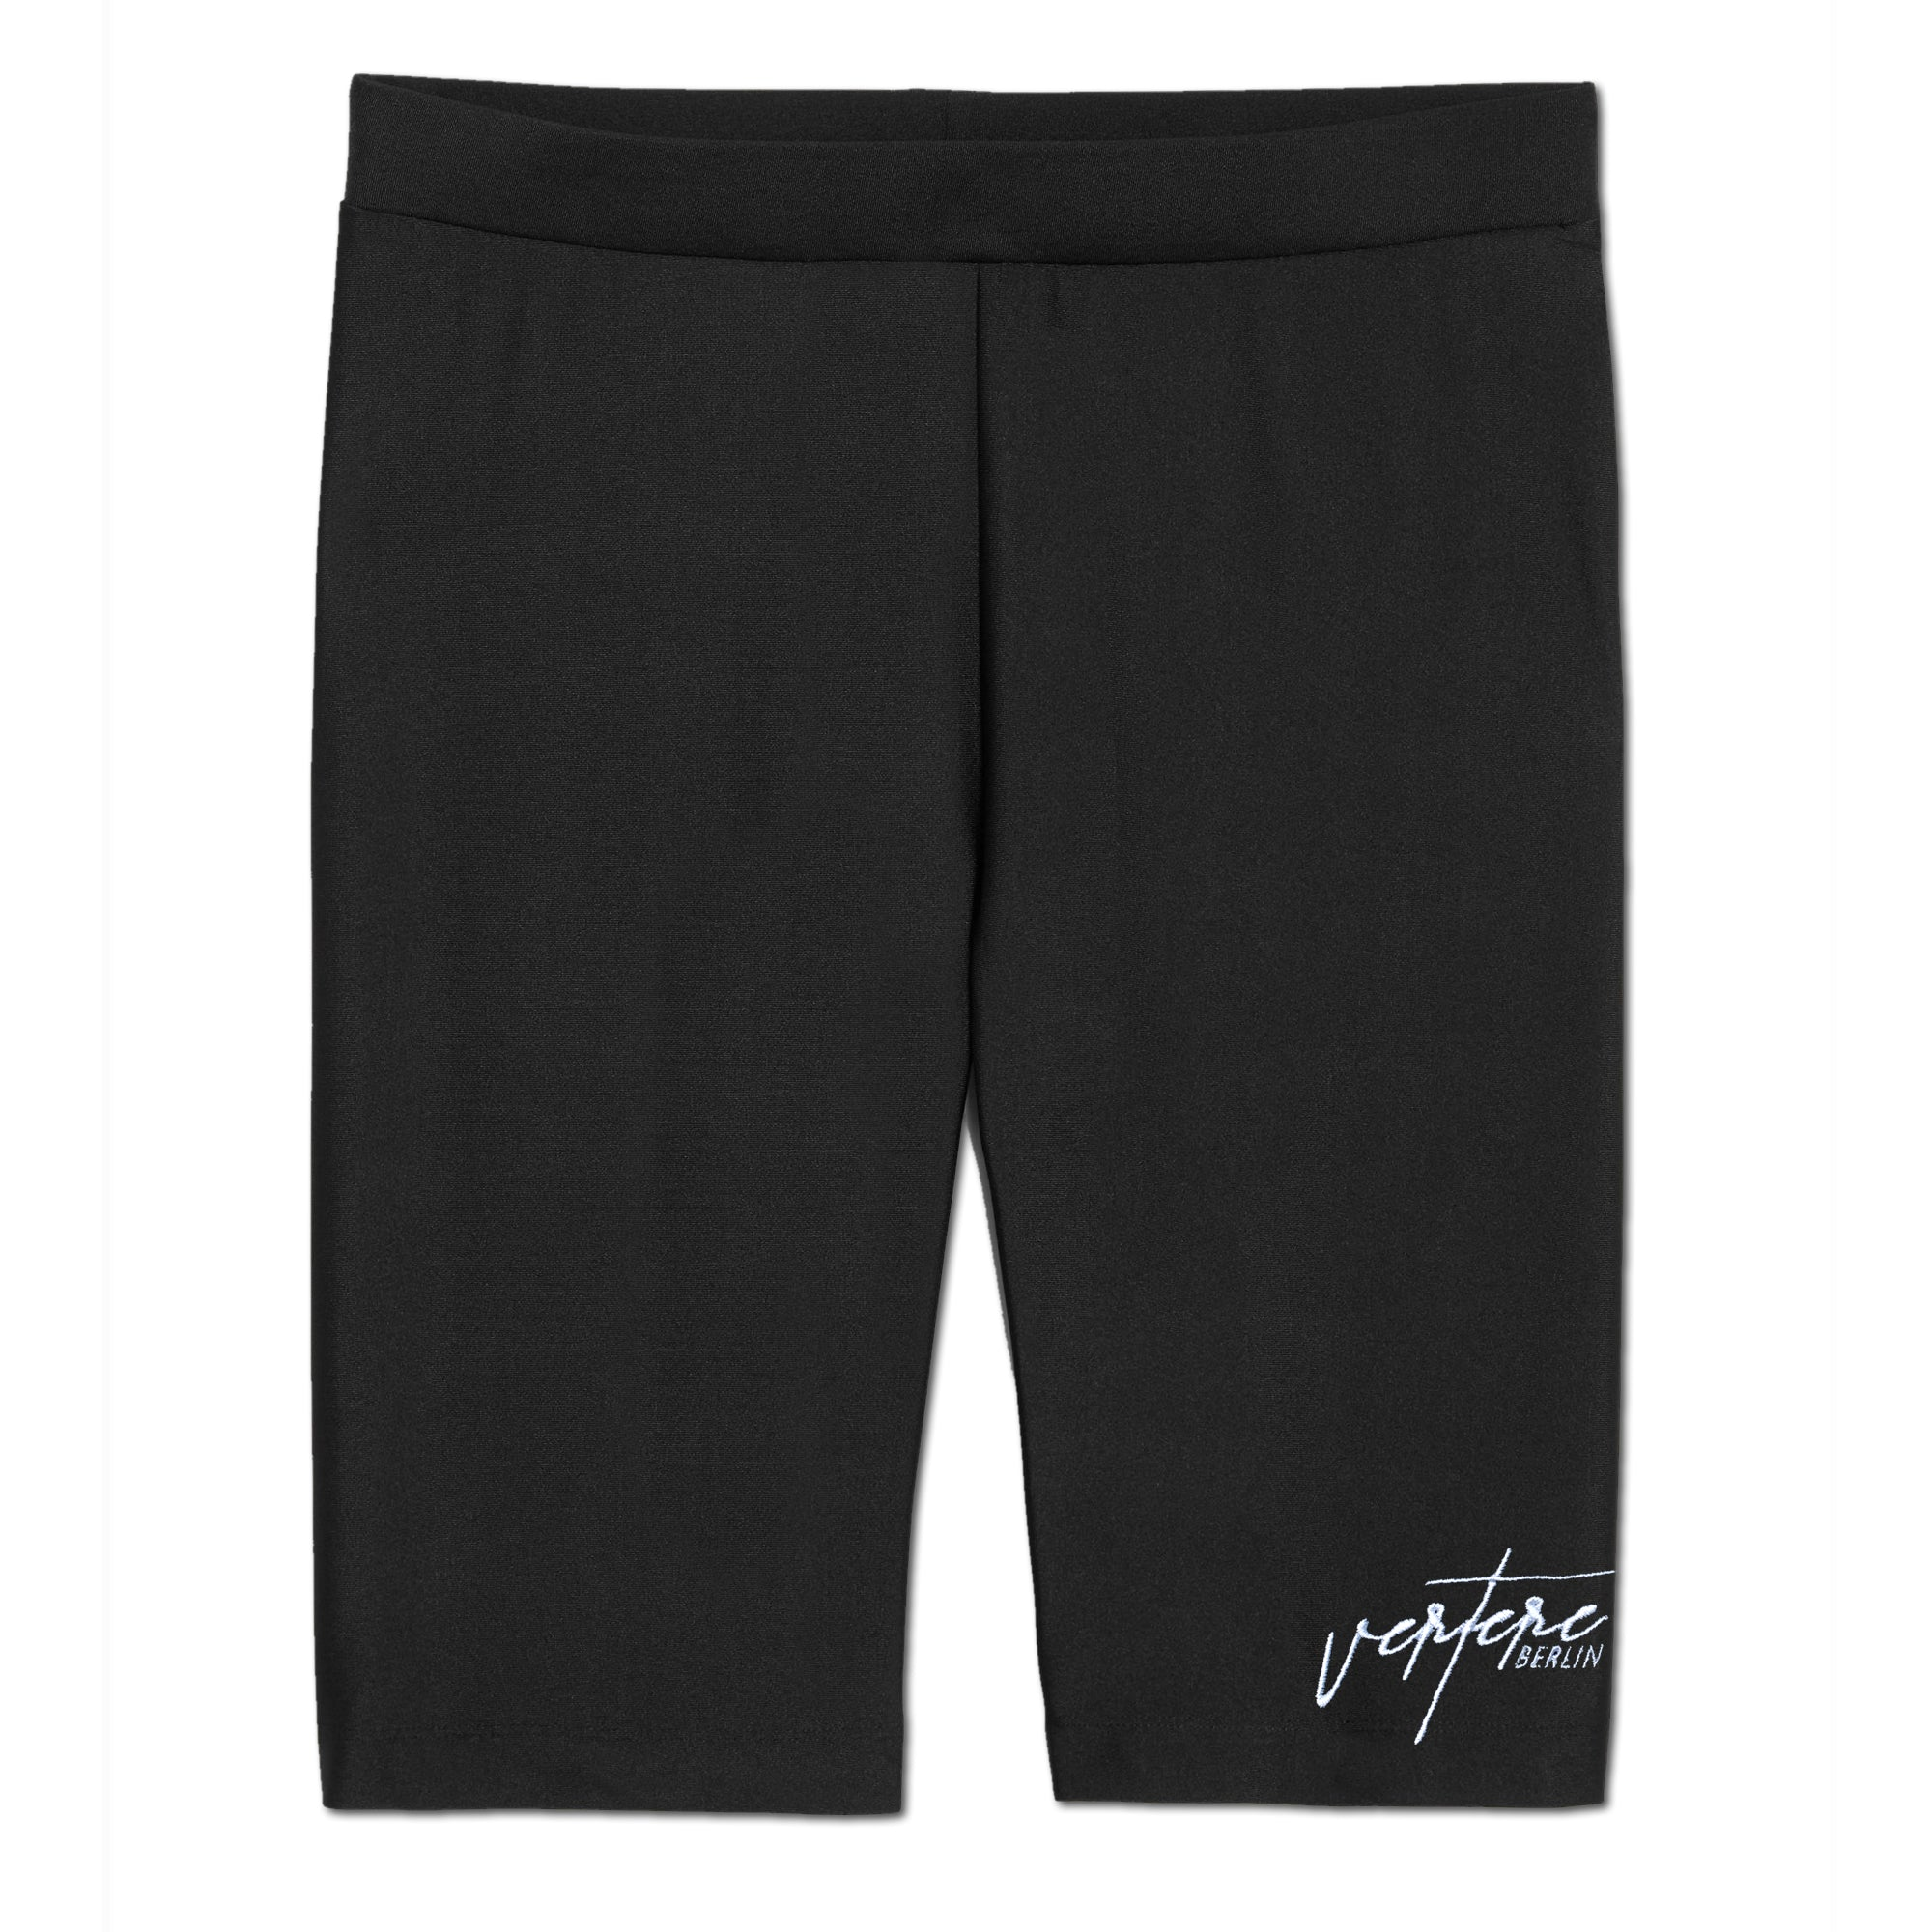 SIGNATURE LADIES CYCLING SHORTS - BLACK